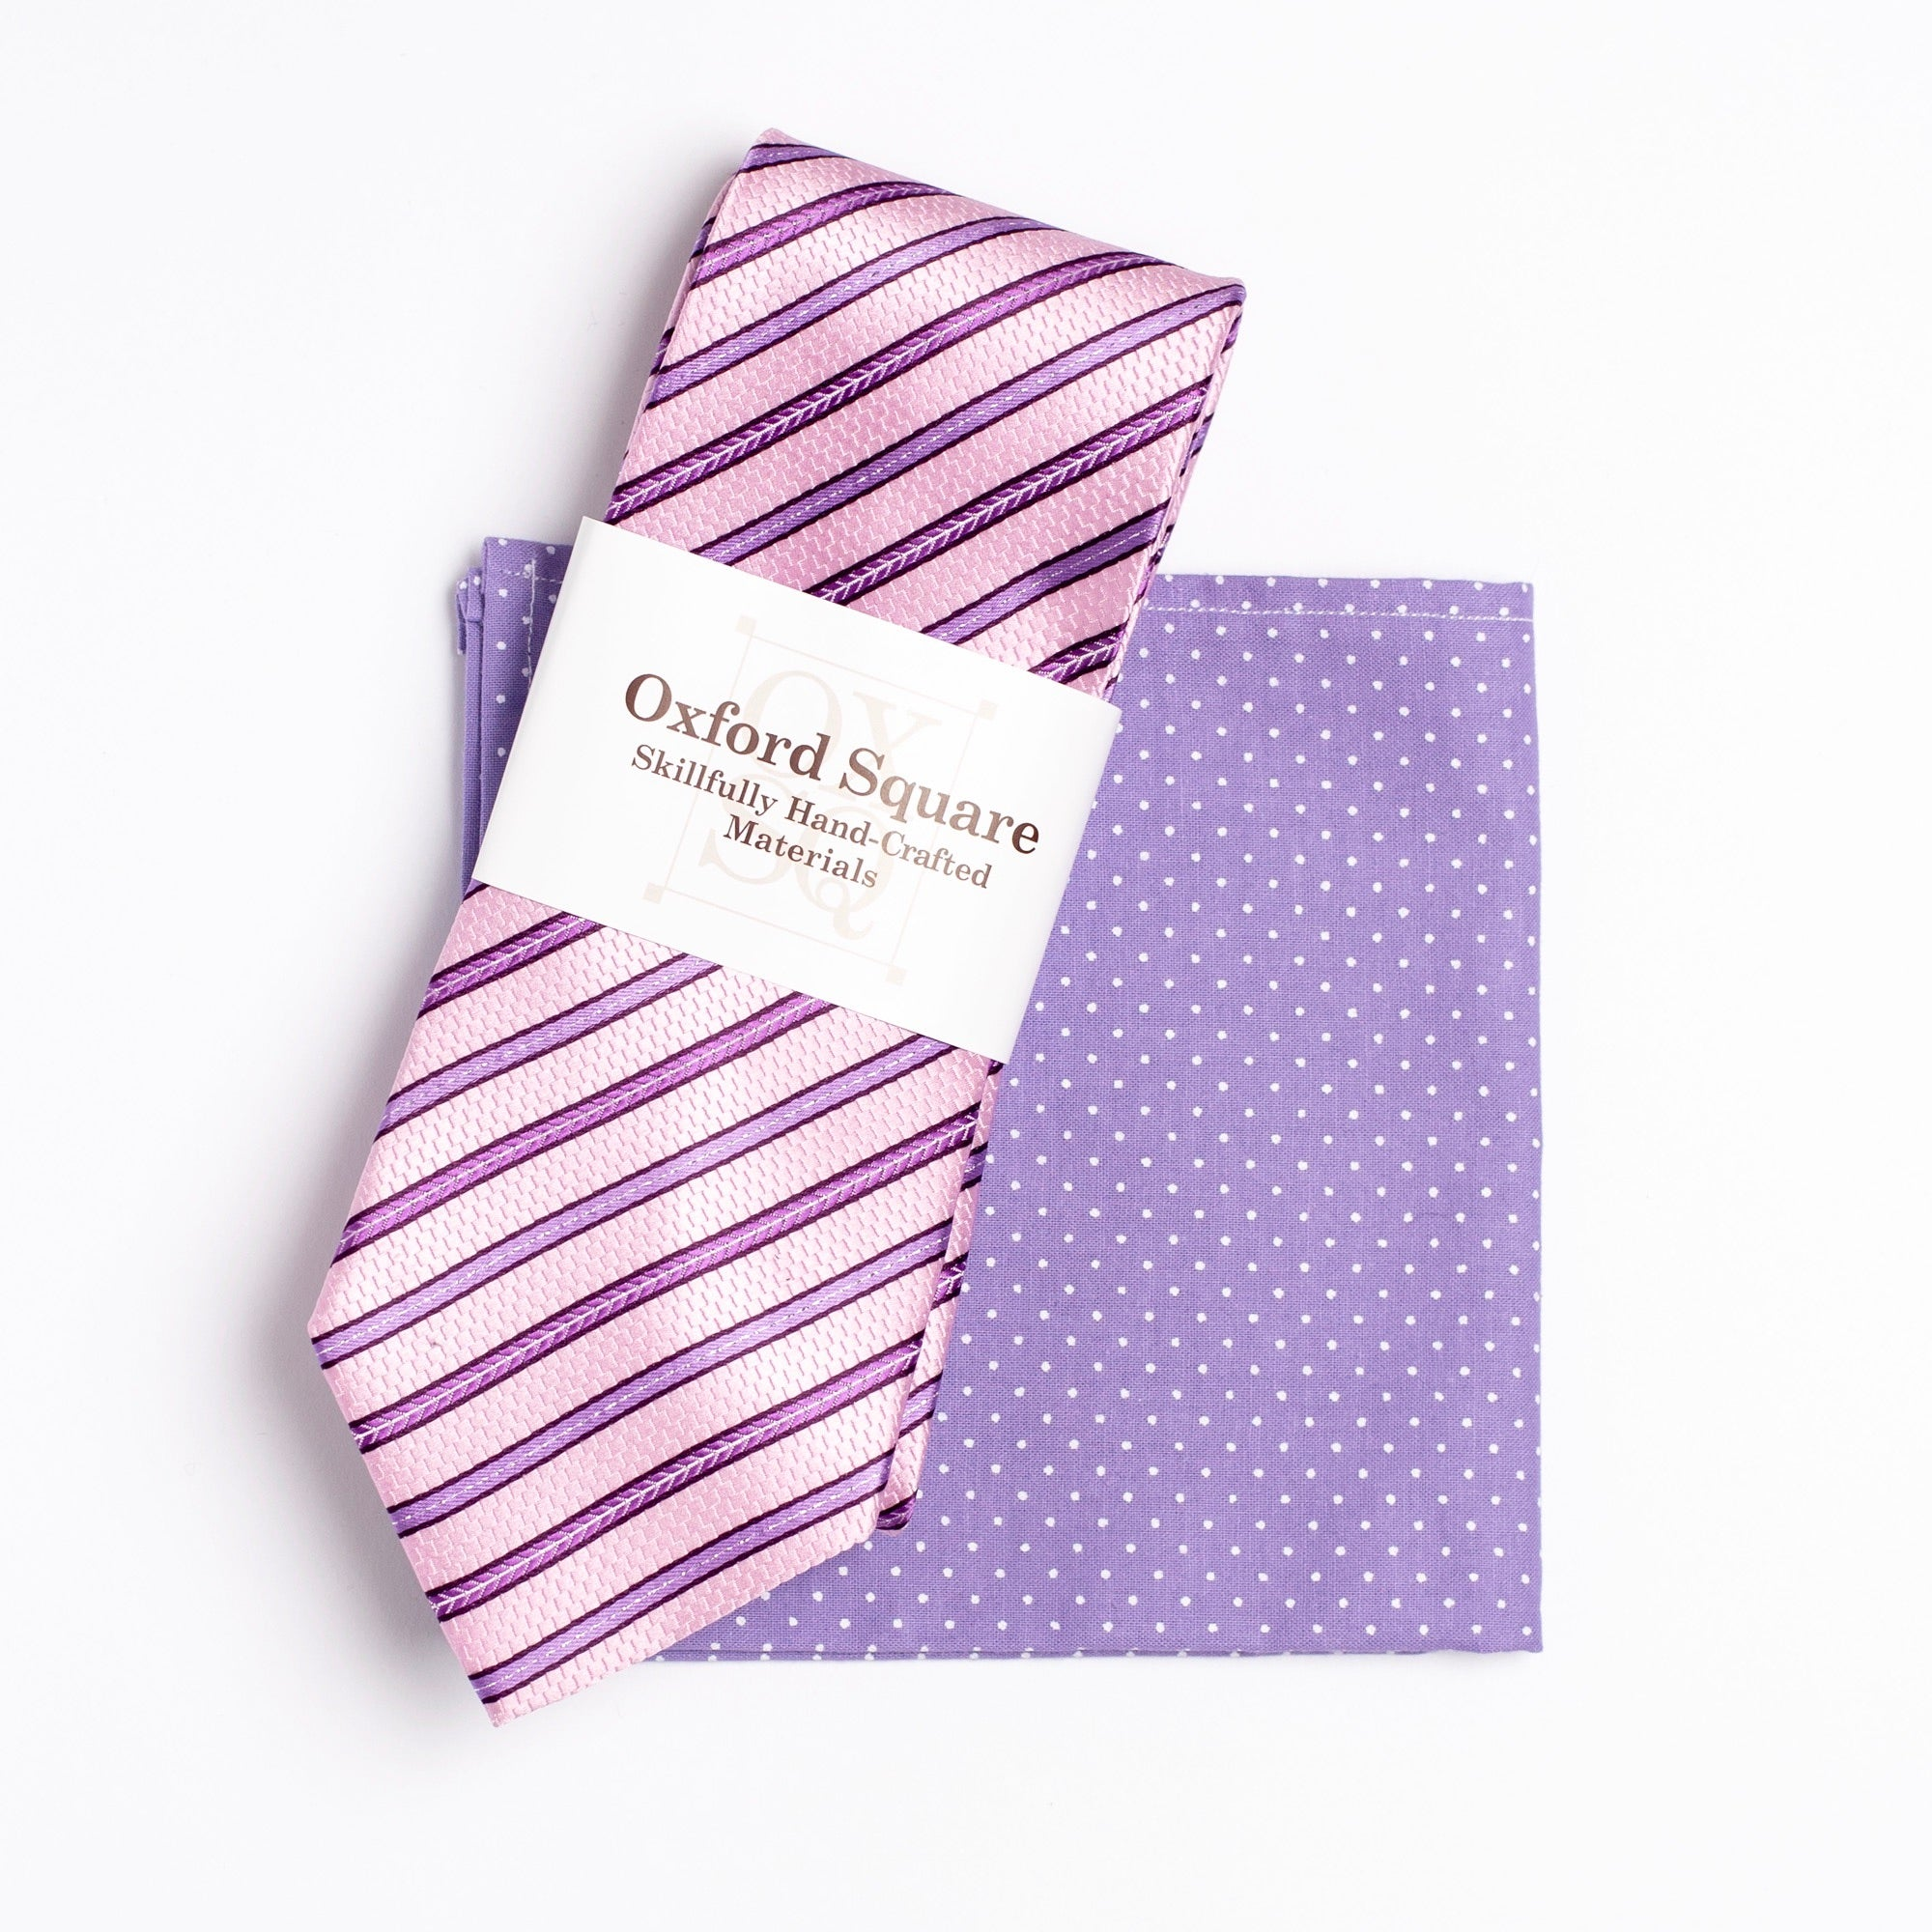 purple and white polka dot pattern pocket square and pink striped tie pack - Oxford Square